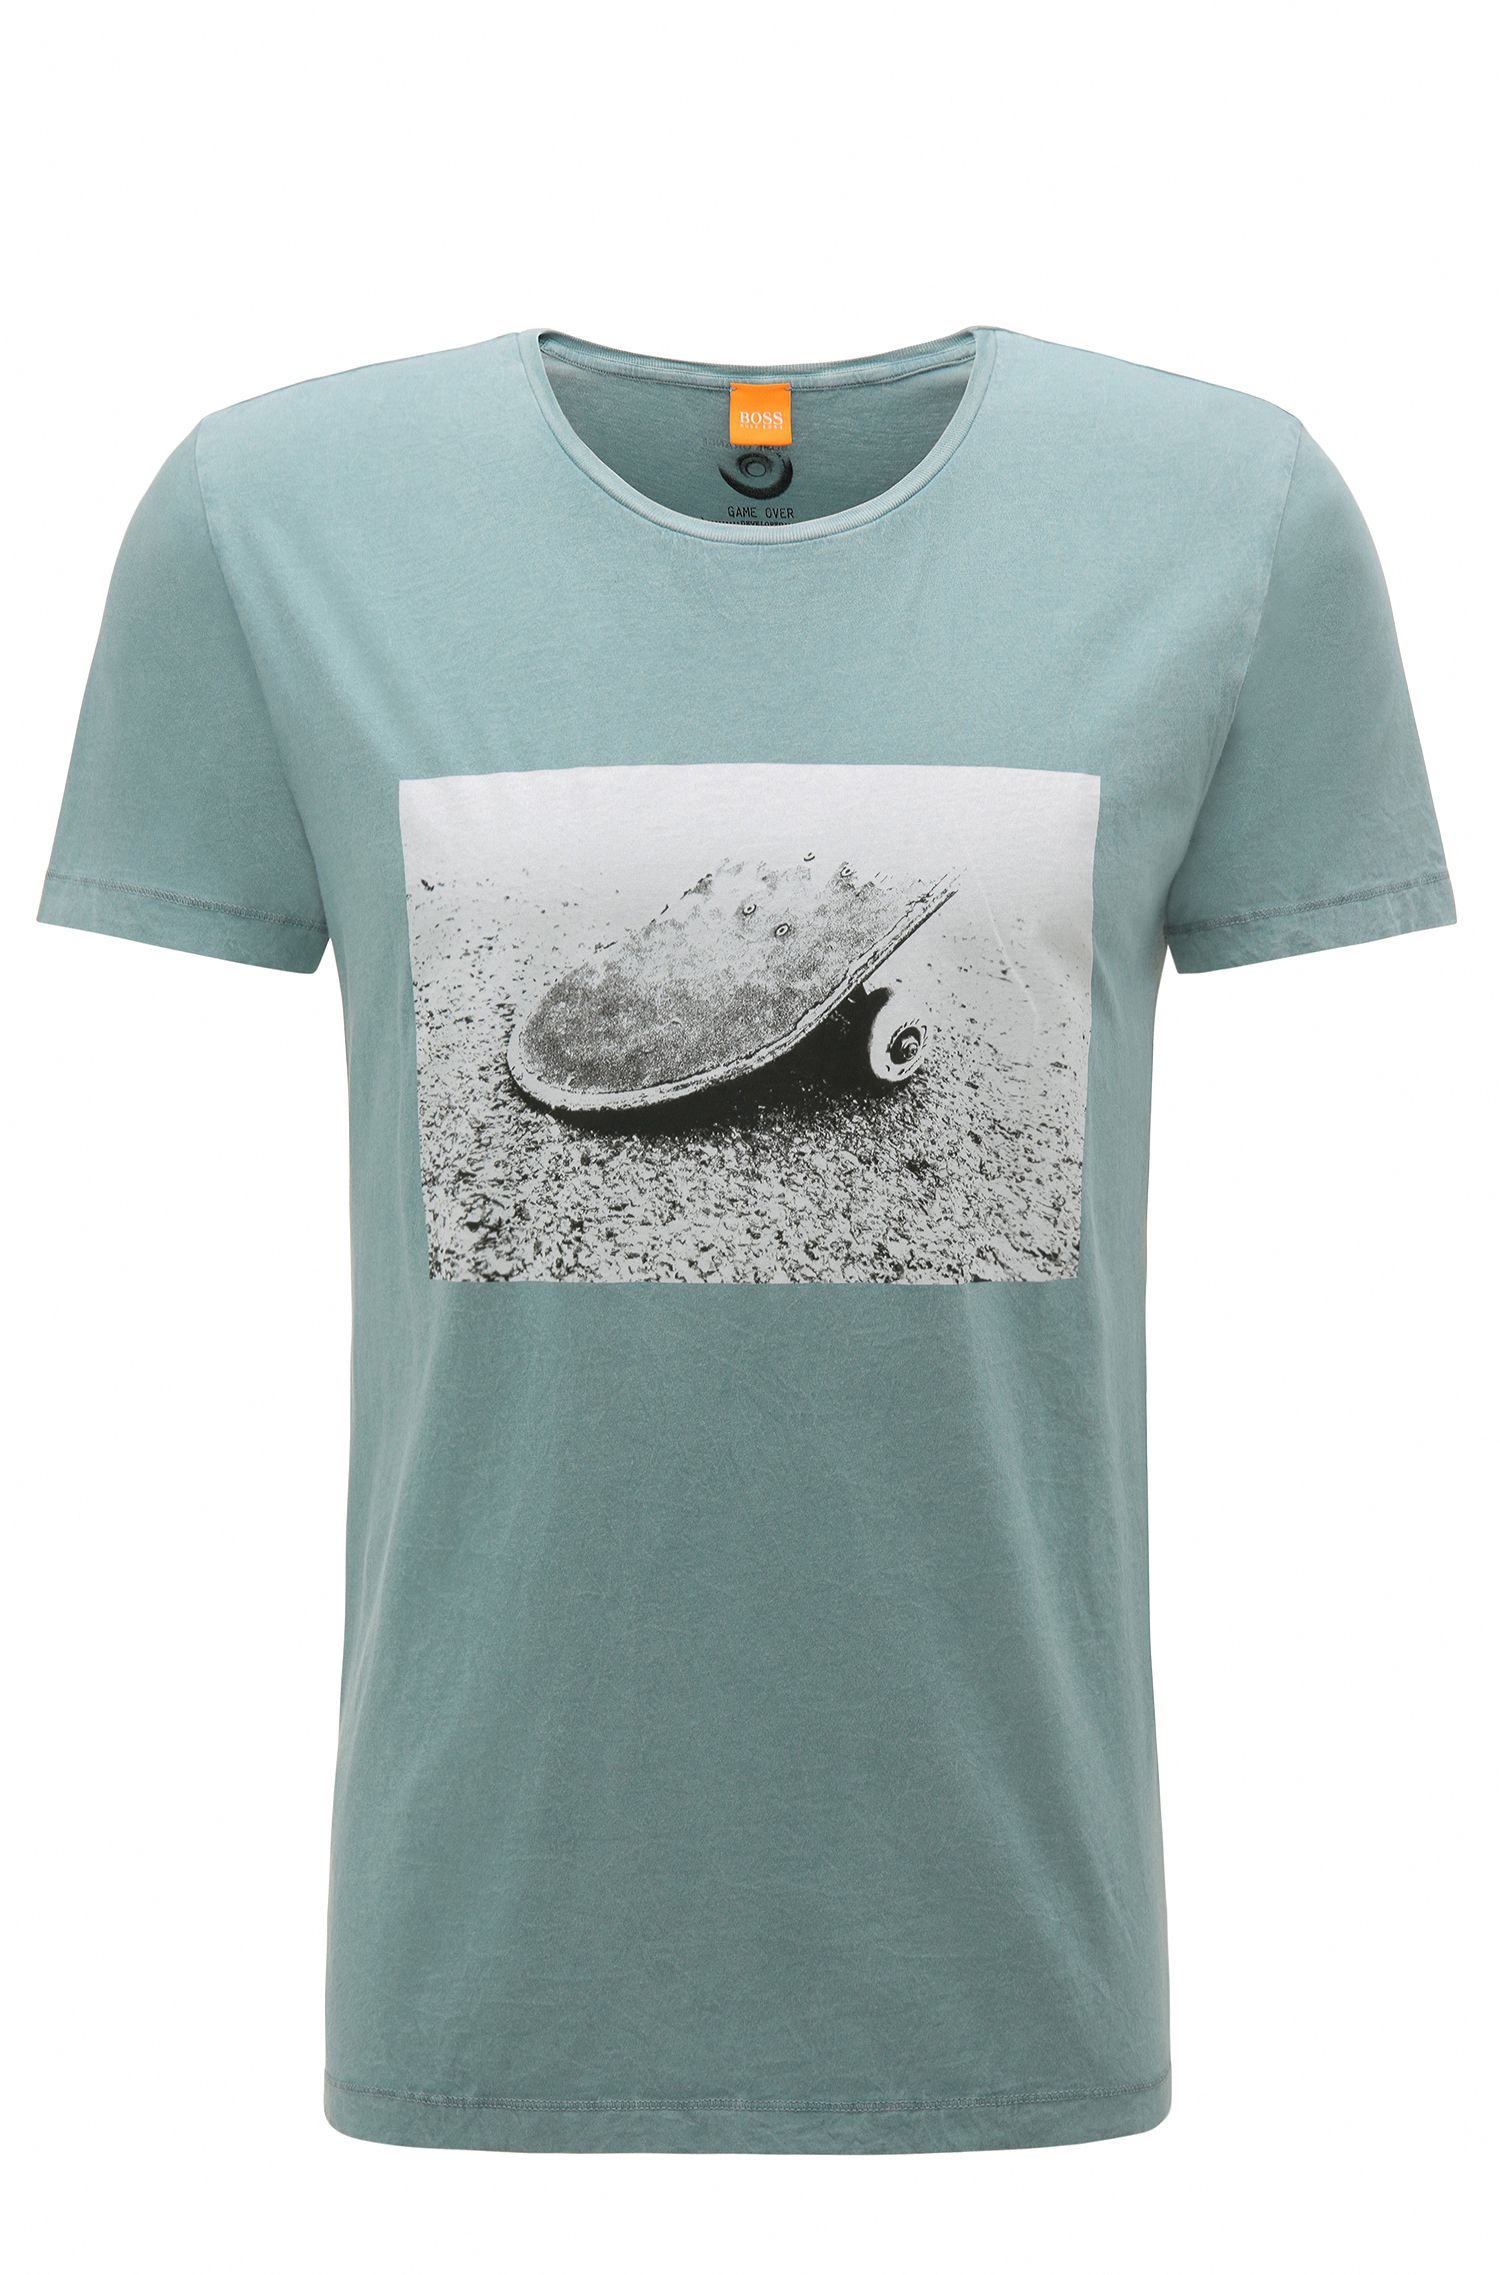 Regular-fit T-shirt van katoen met fotoprint: 'Tasteful 2'